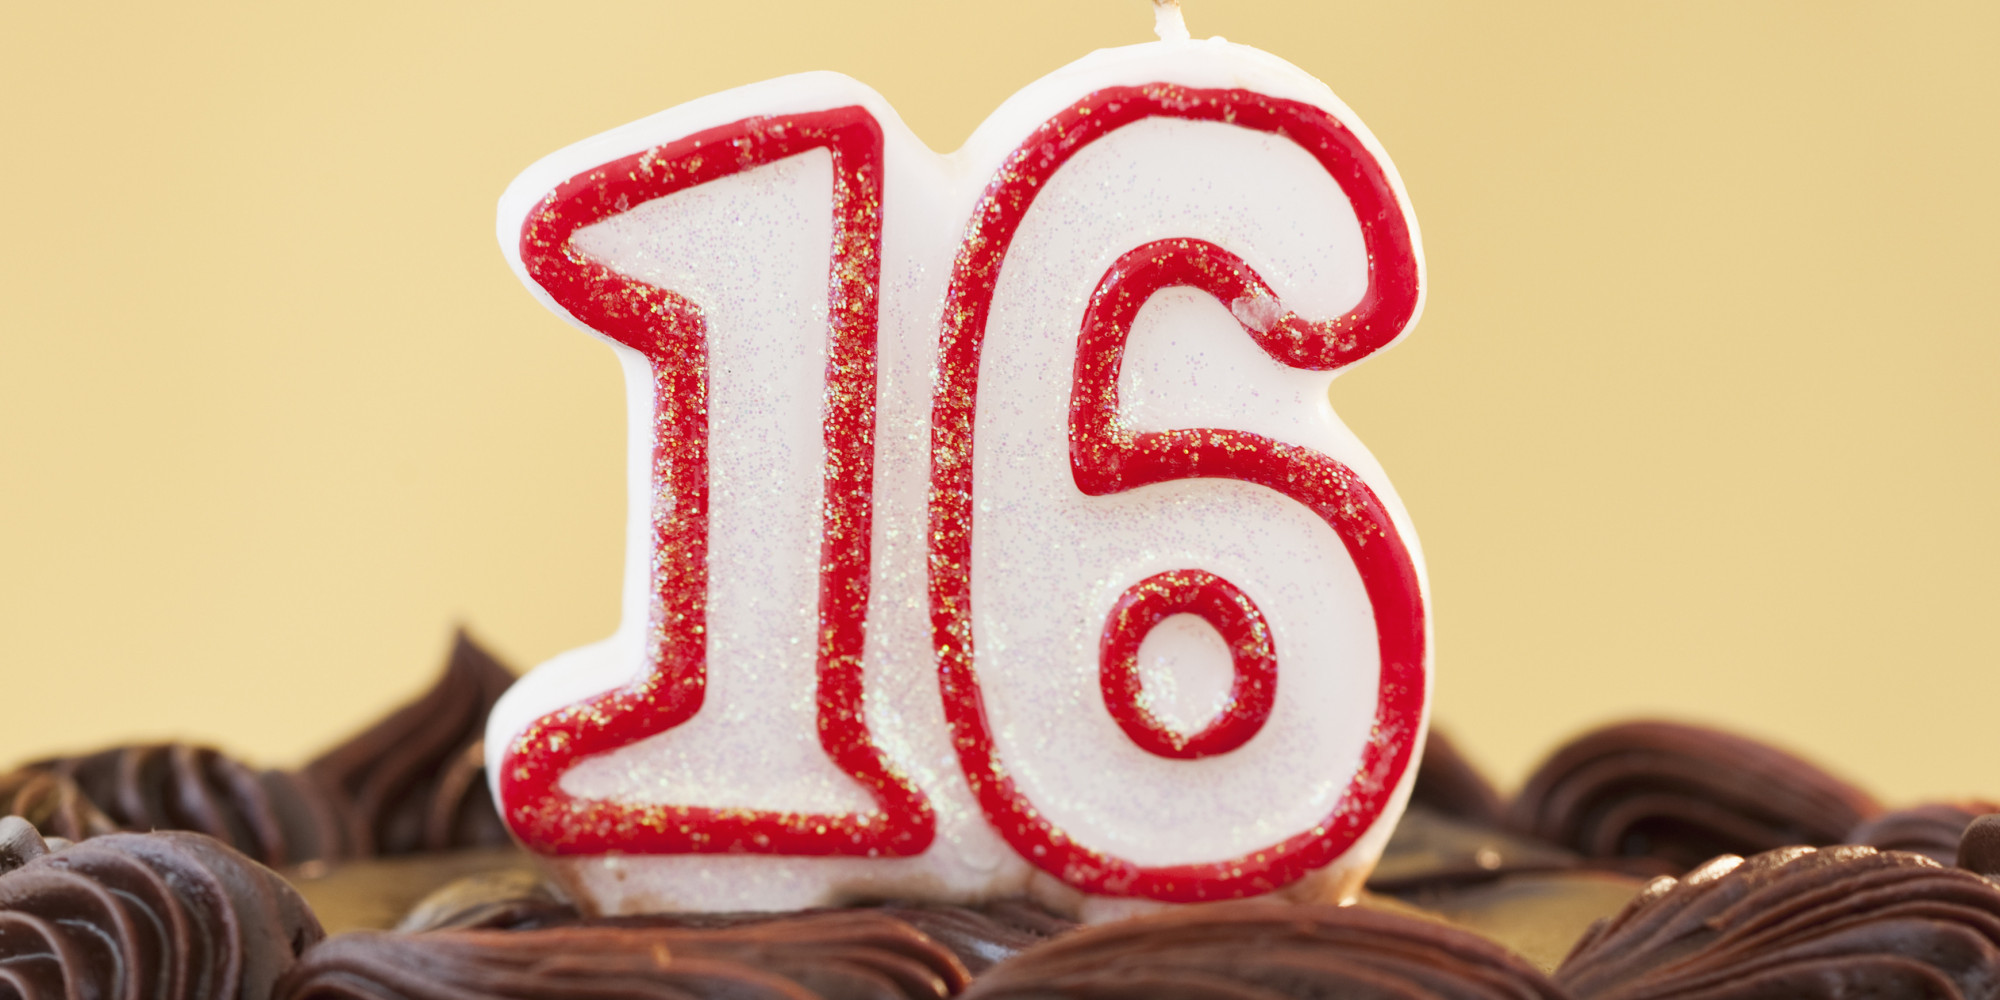 Birthday Ideas For Boy Turning 16 Image Inspiration of Cake and